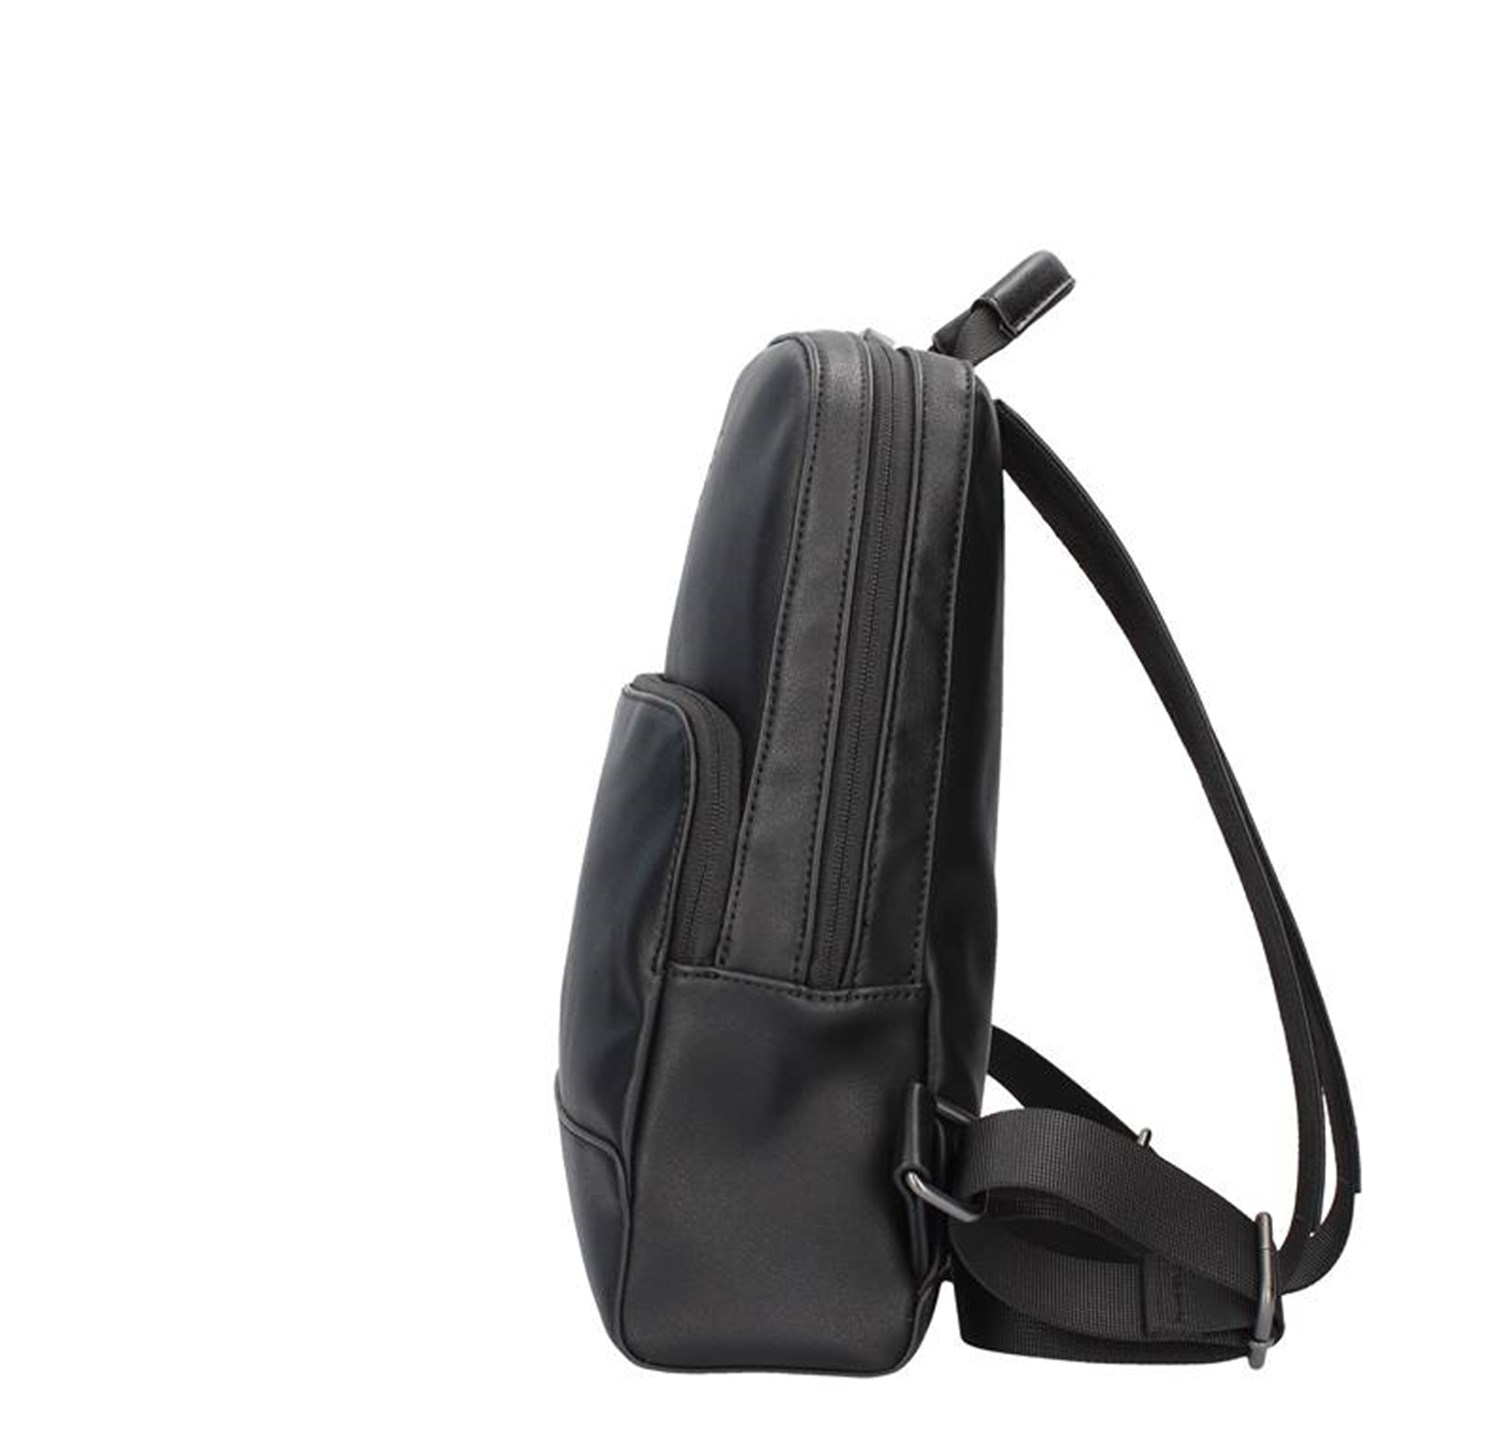 Moleskine Bags Accessories Backpacks BLACK ET86UBKS